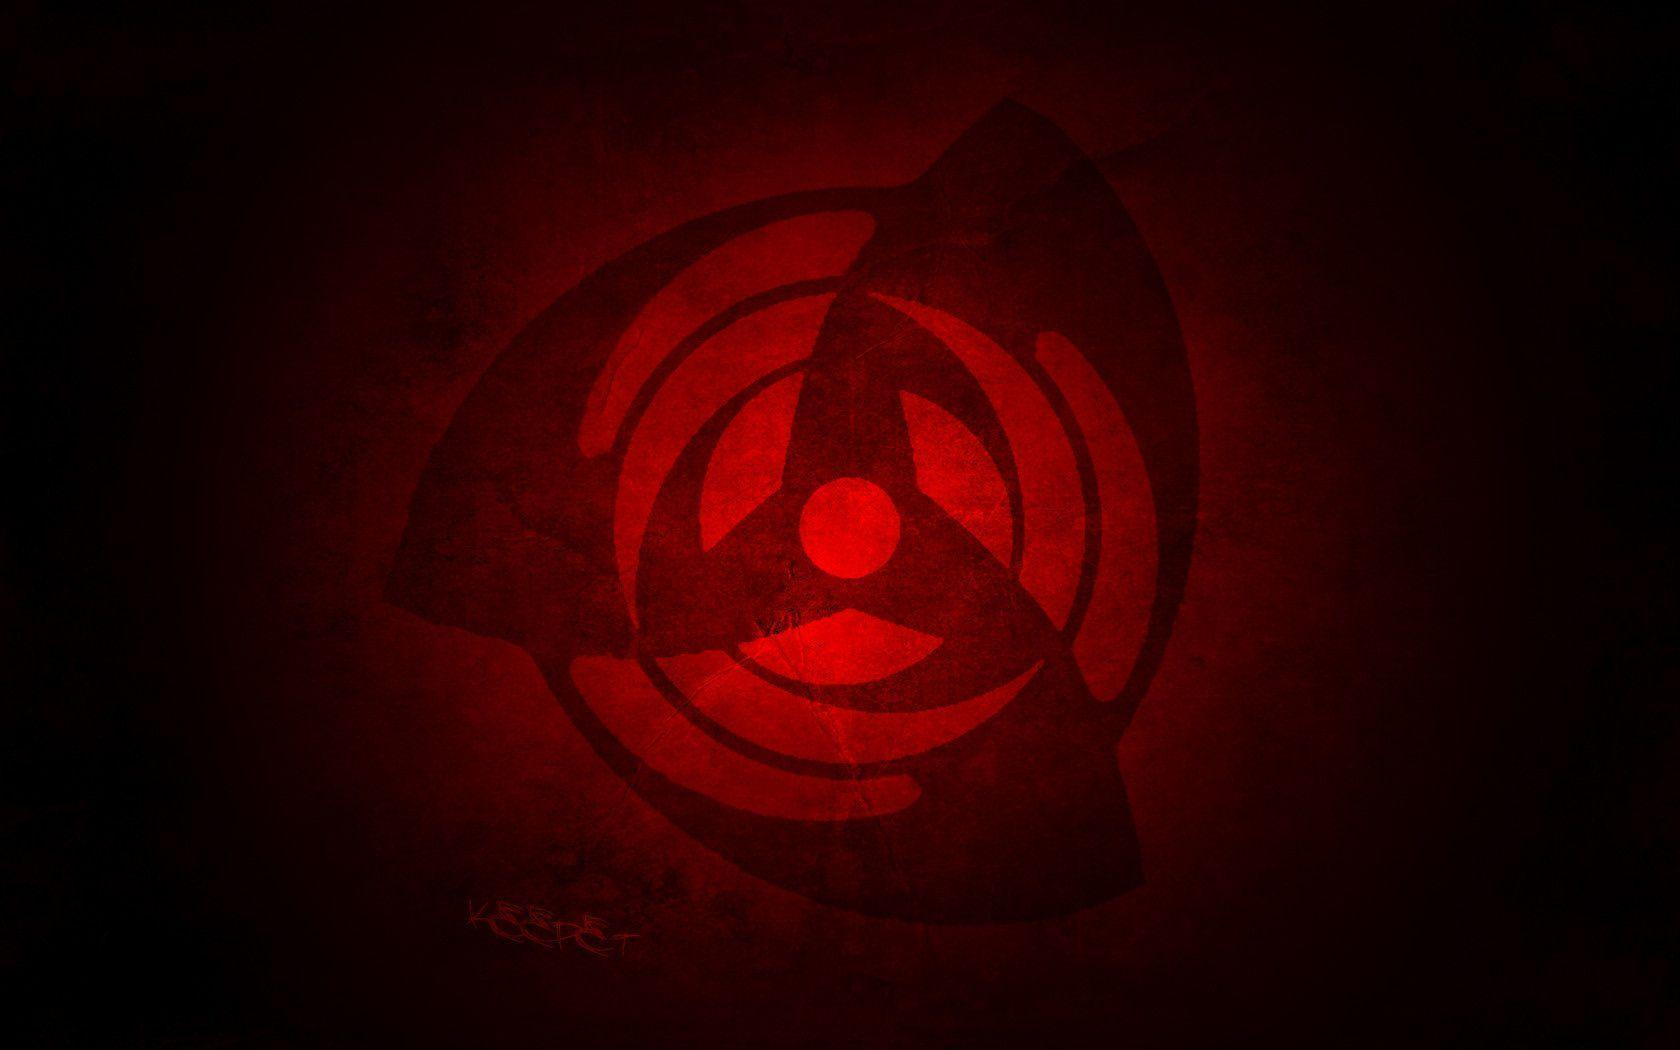 Wallpapers For > Mangekyou Sharingan Wallpaper Hd